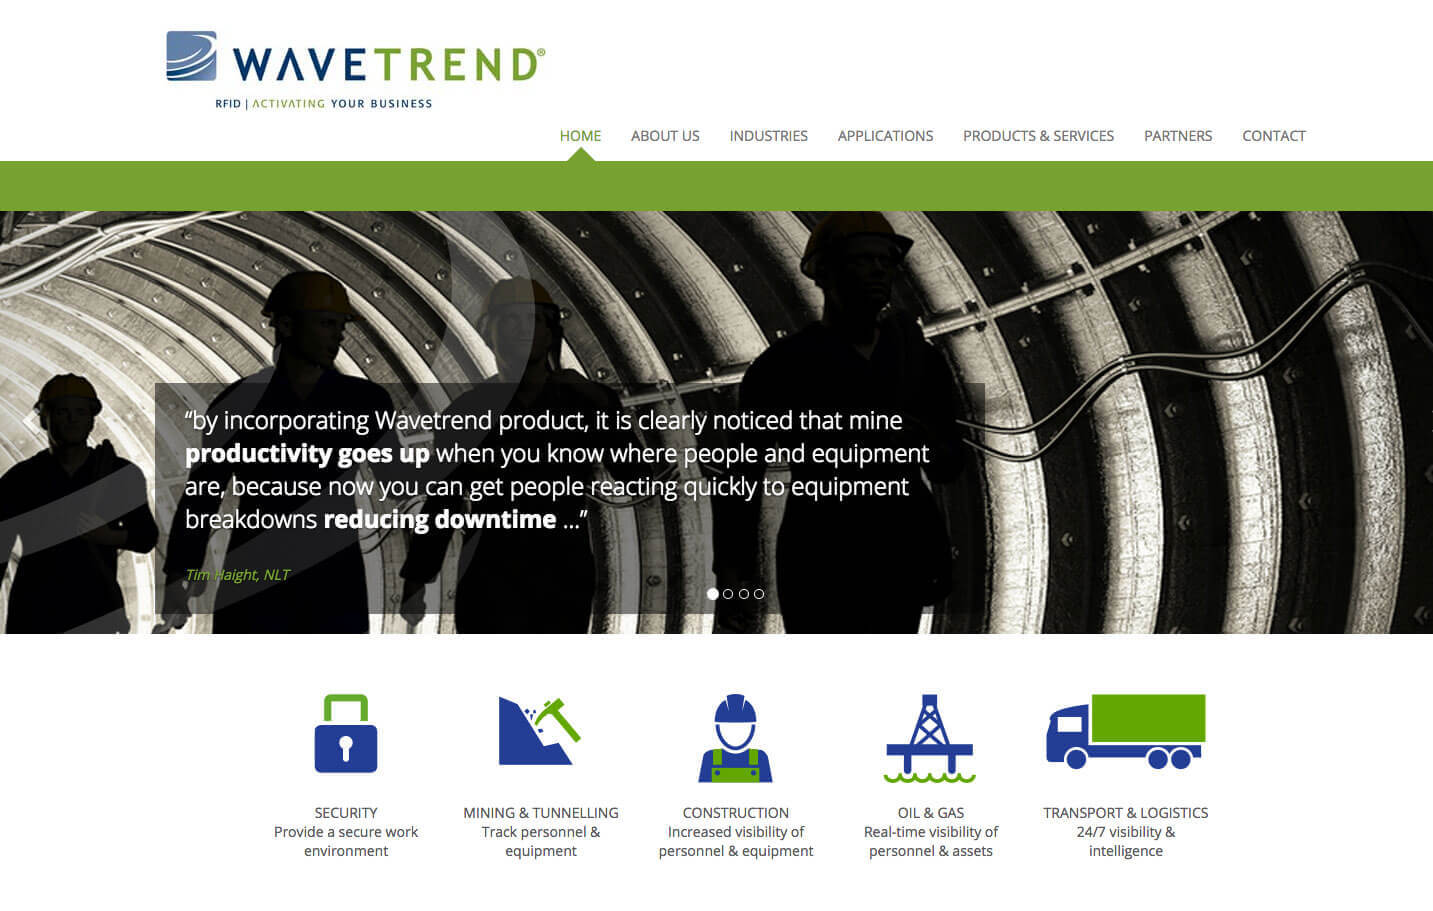 Wavetrend - Home page